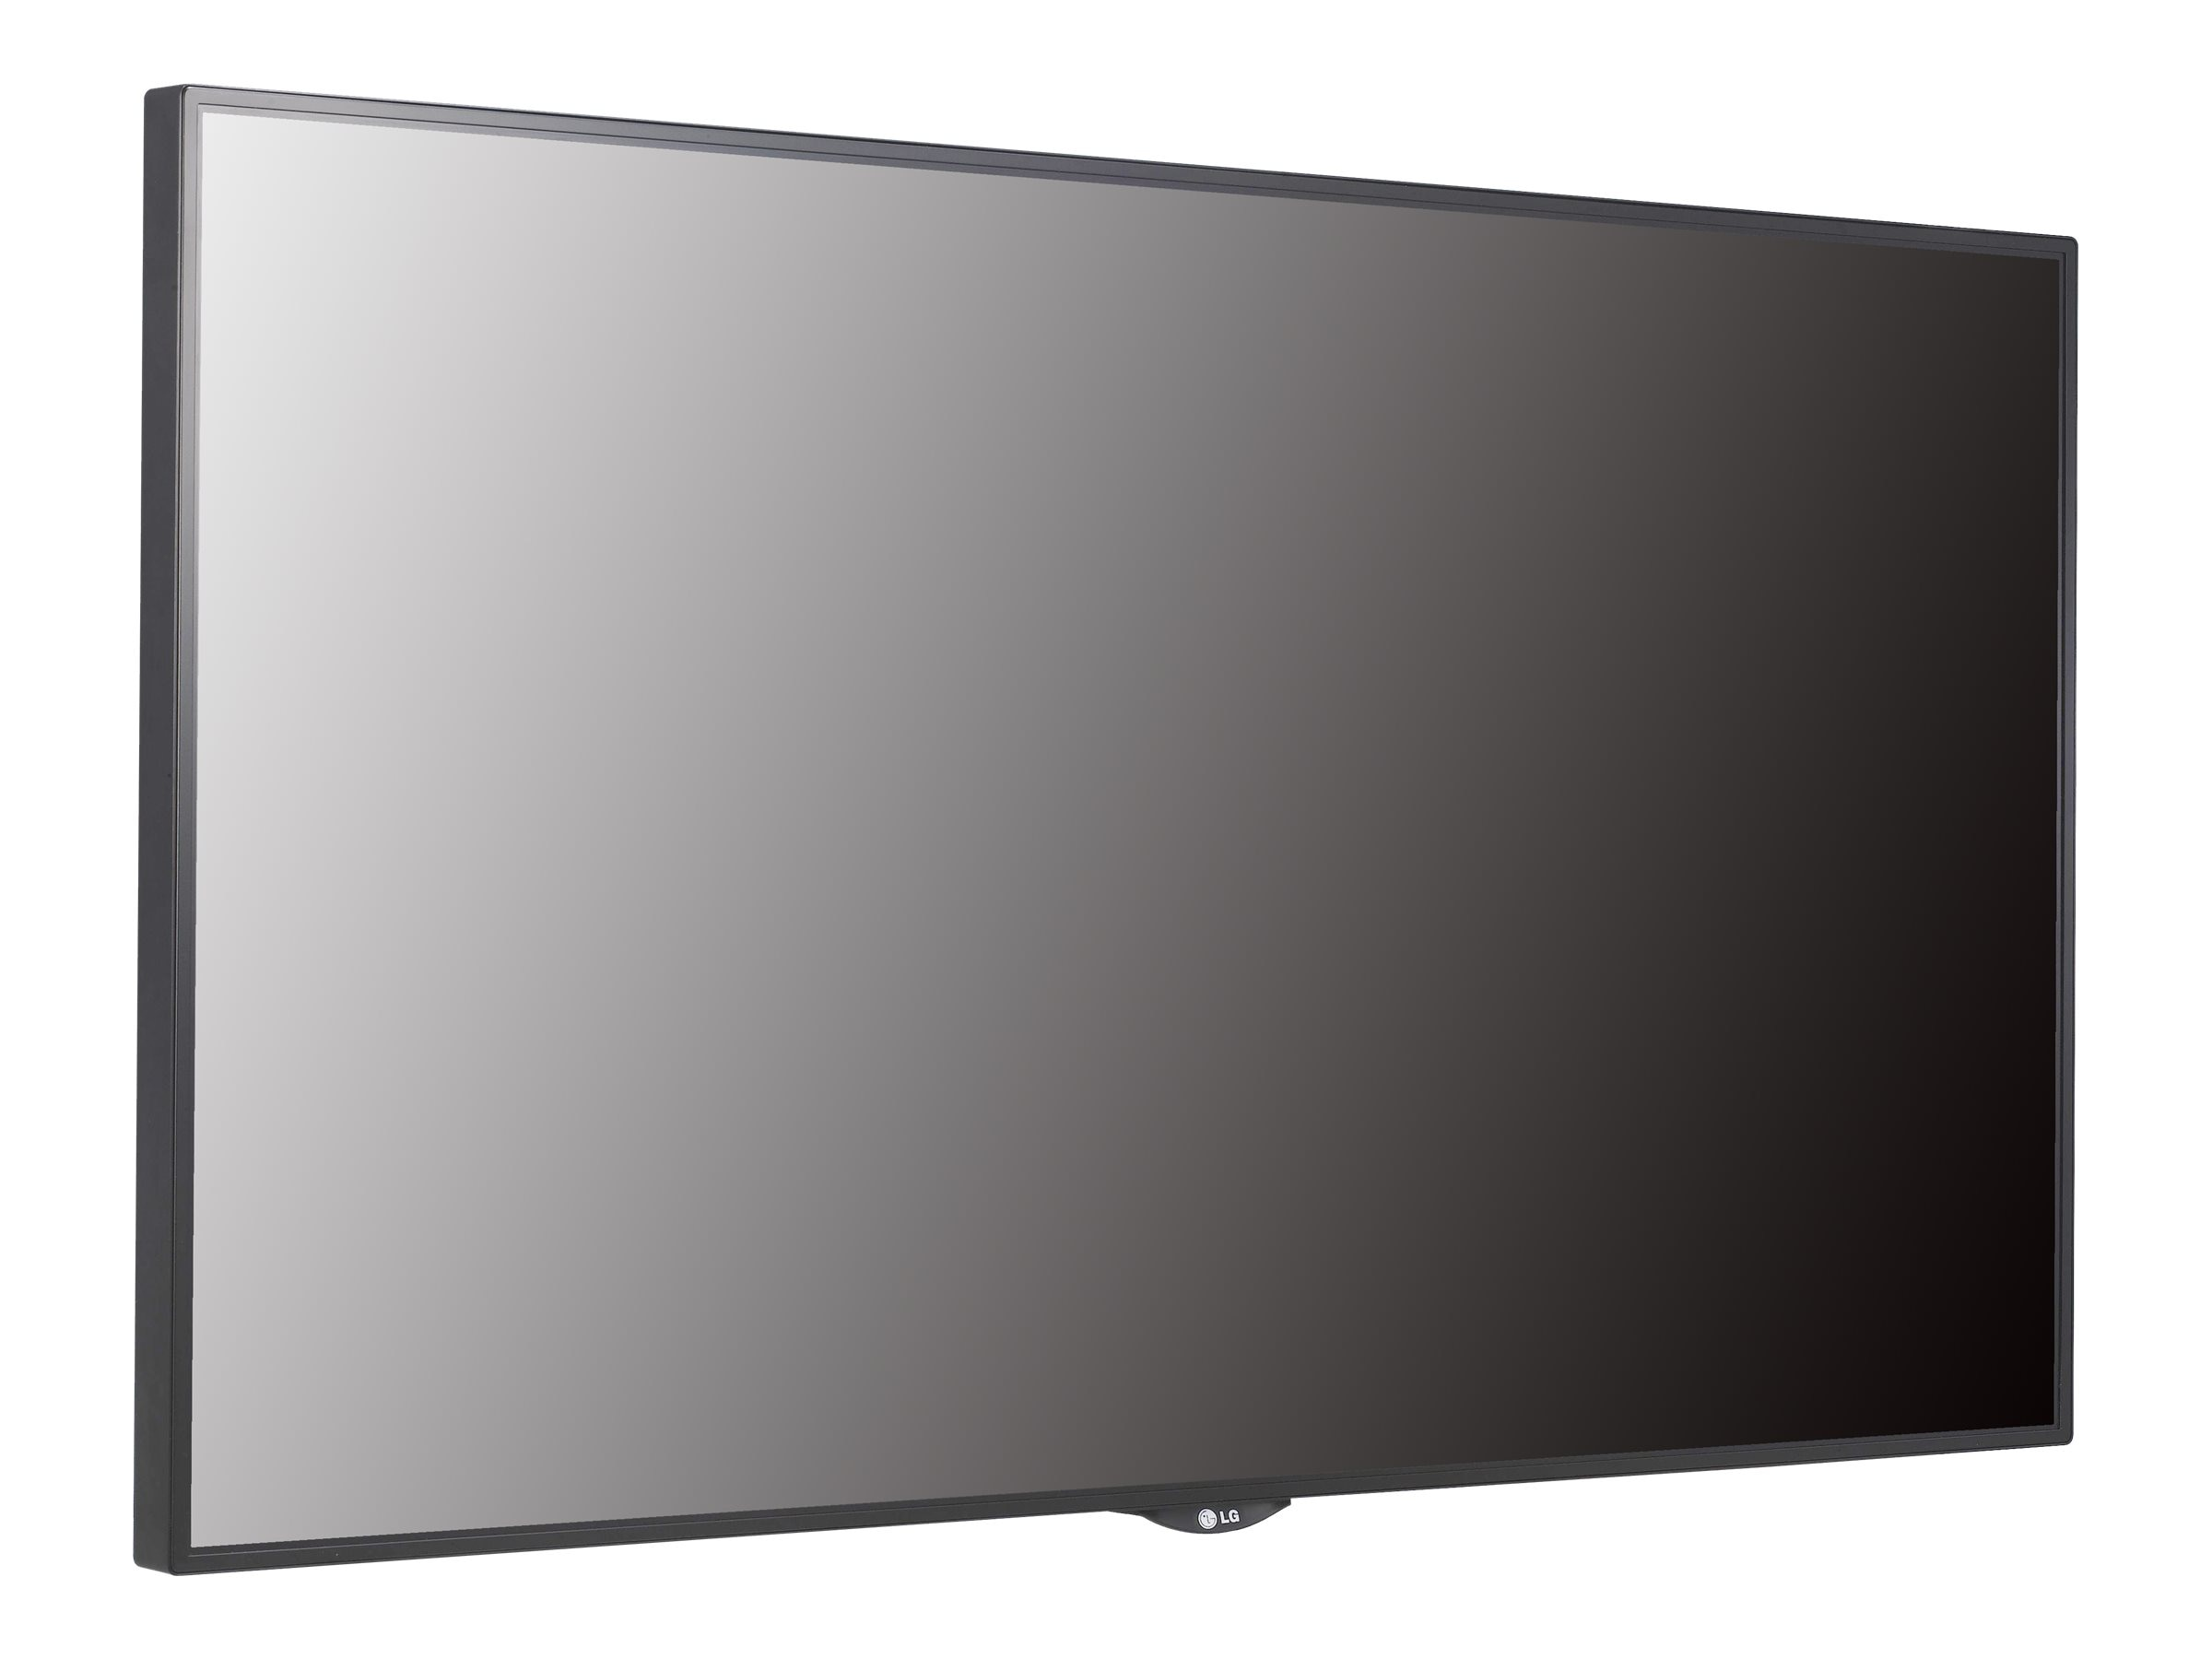 LG 49 LS75A-5B Full HD LED-LCD Display, Black, 49LS75A-5B